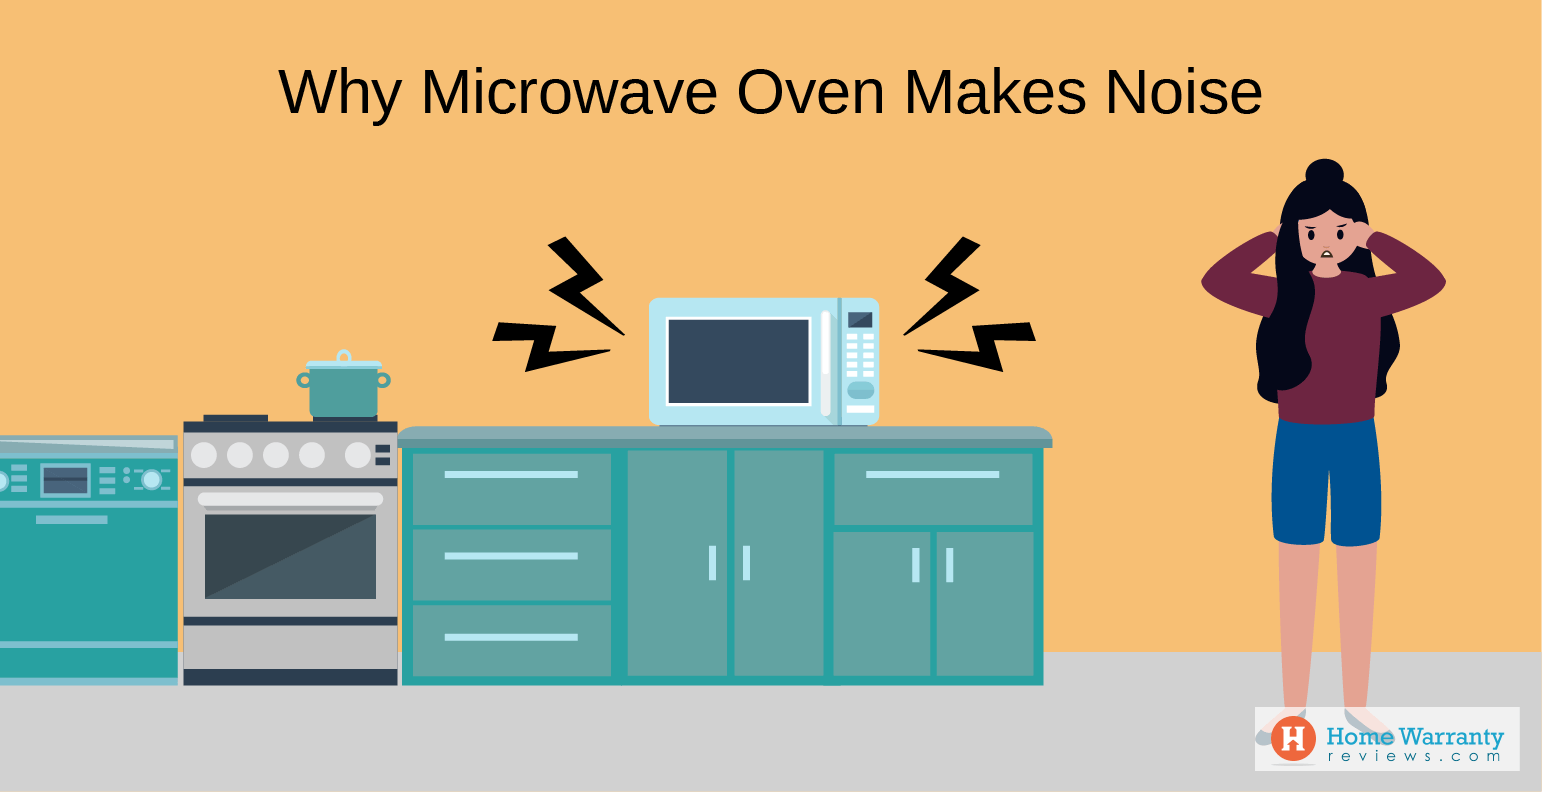 Secret revealed! Know why microwave oven makes noise